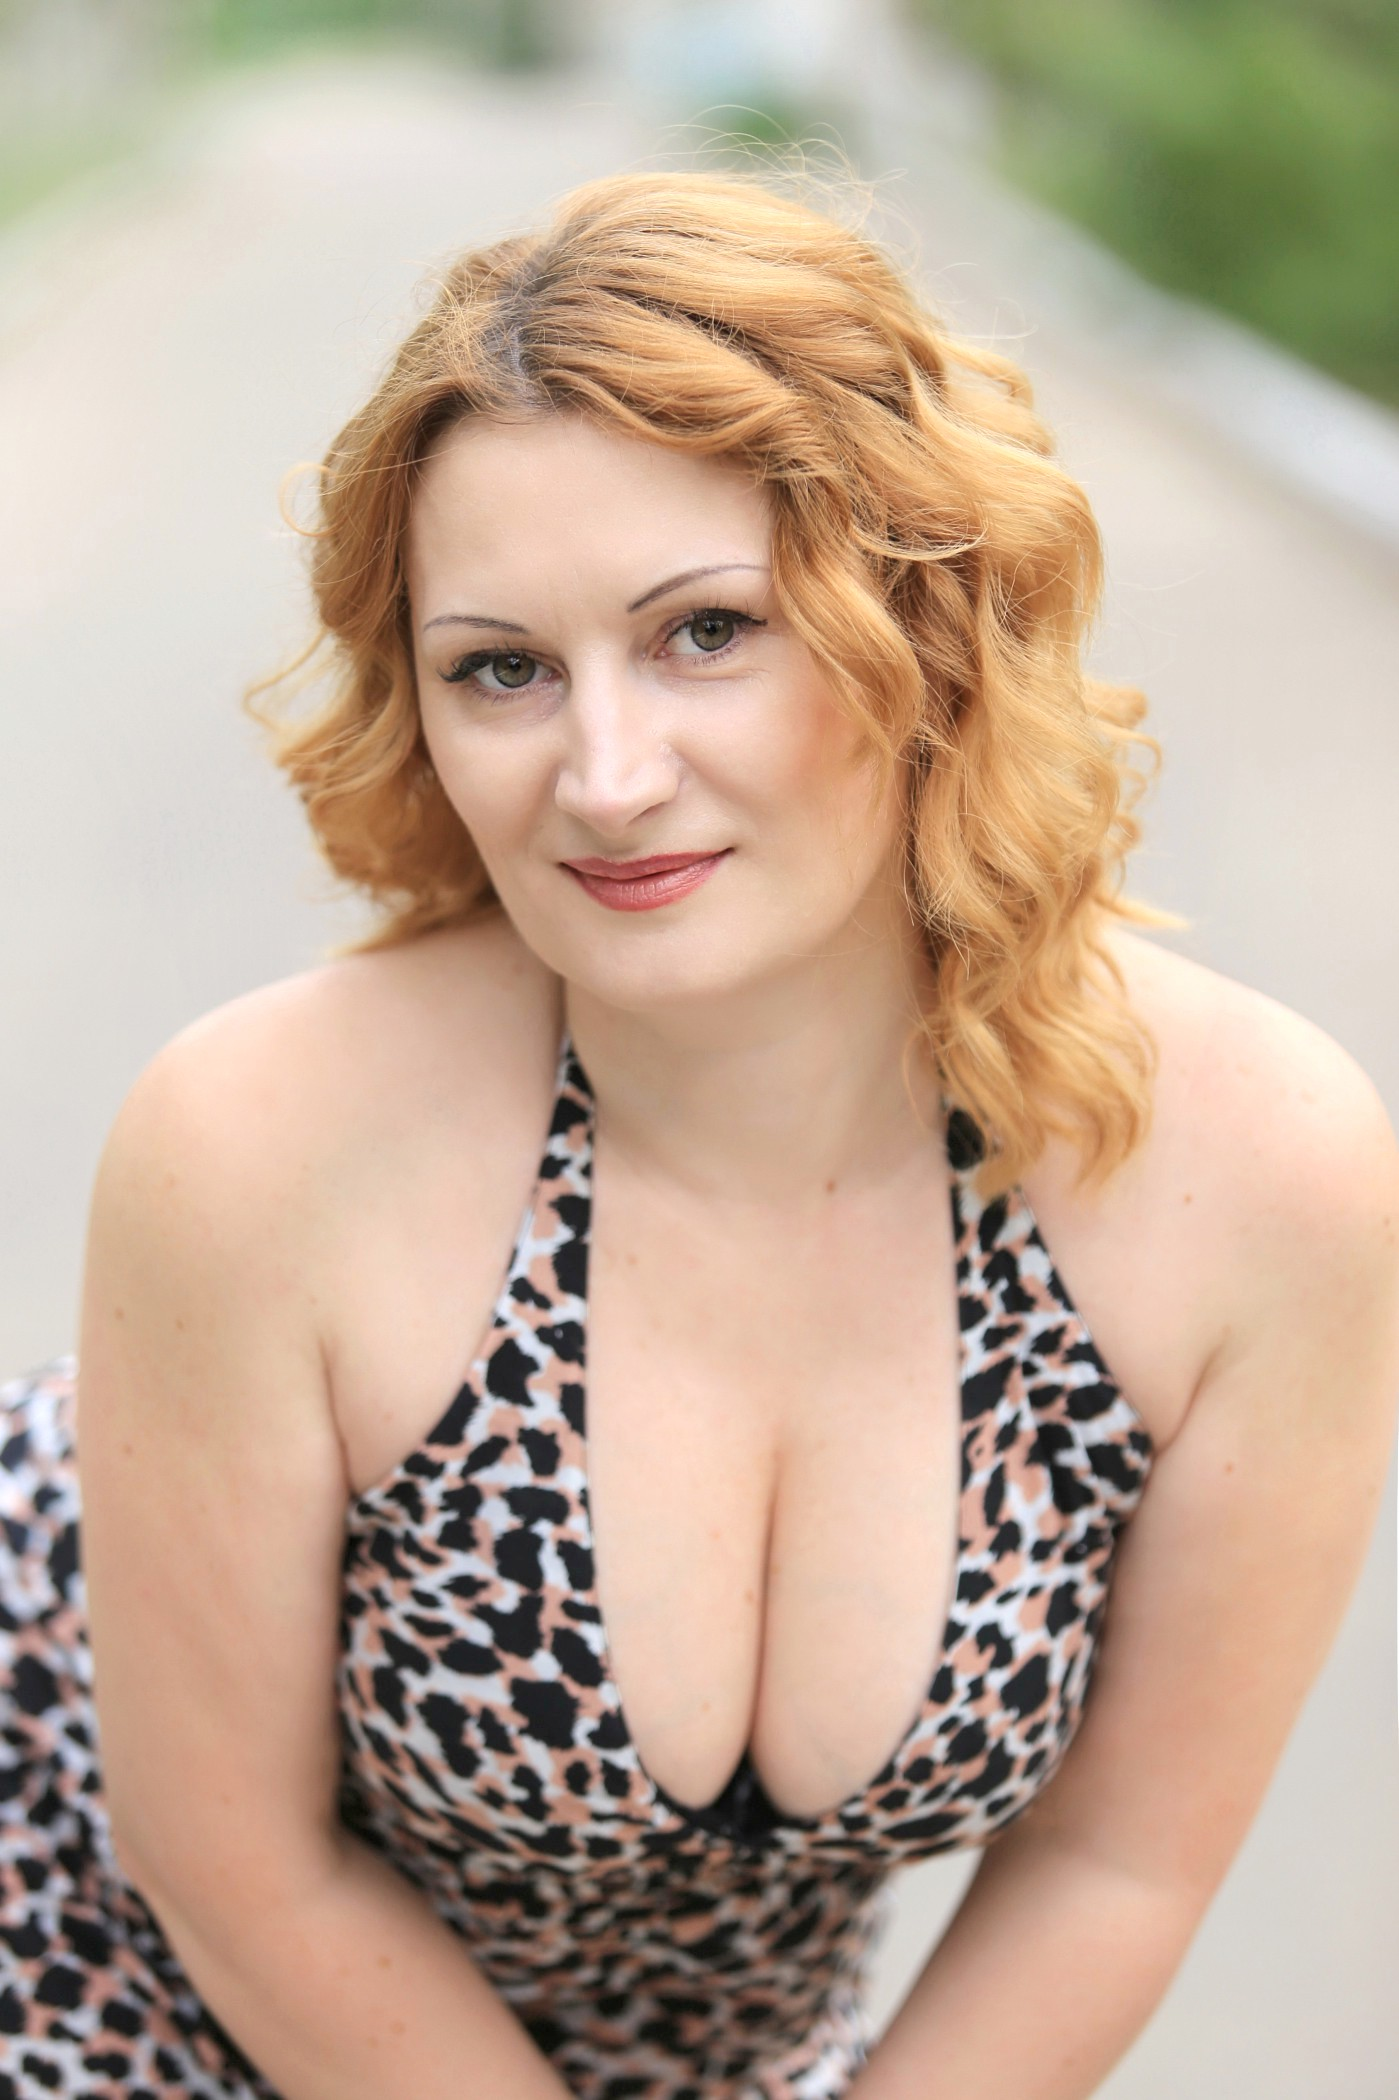 Start message dating site